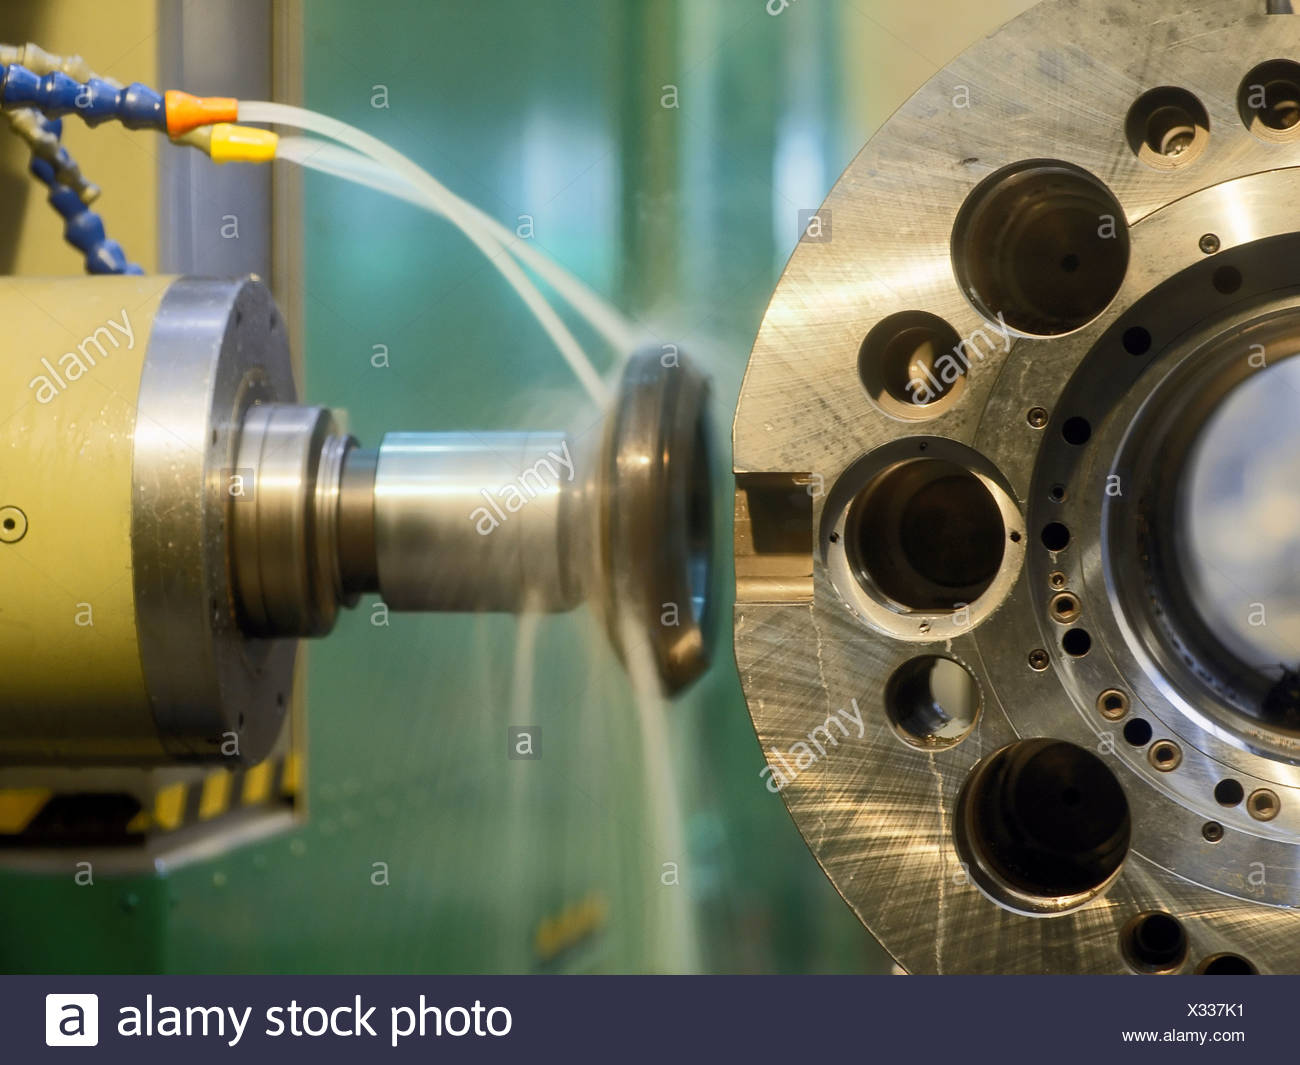 Metalwork - Stock Image